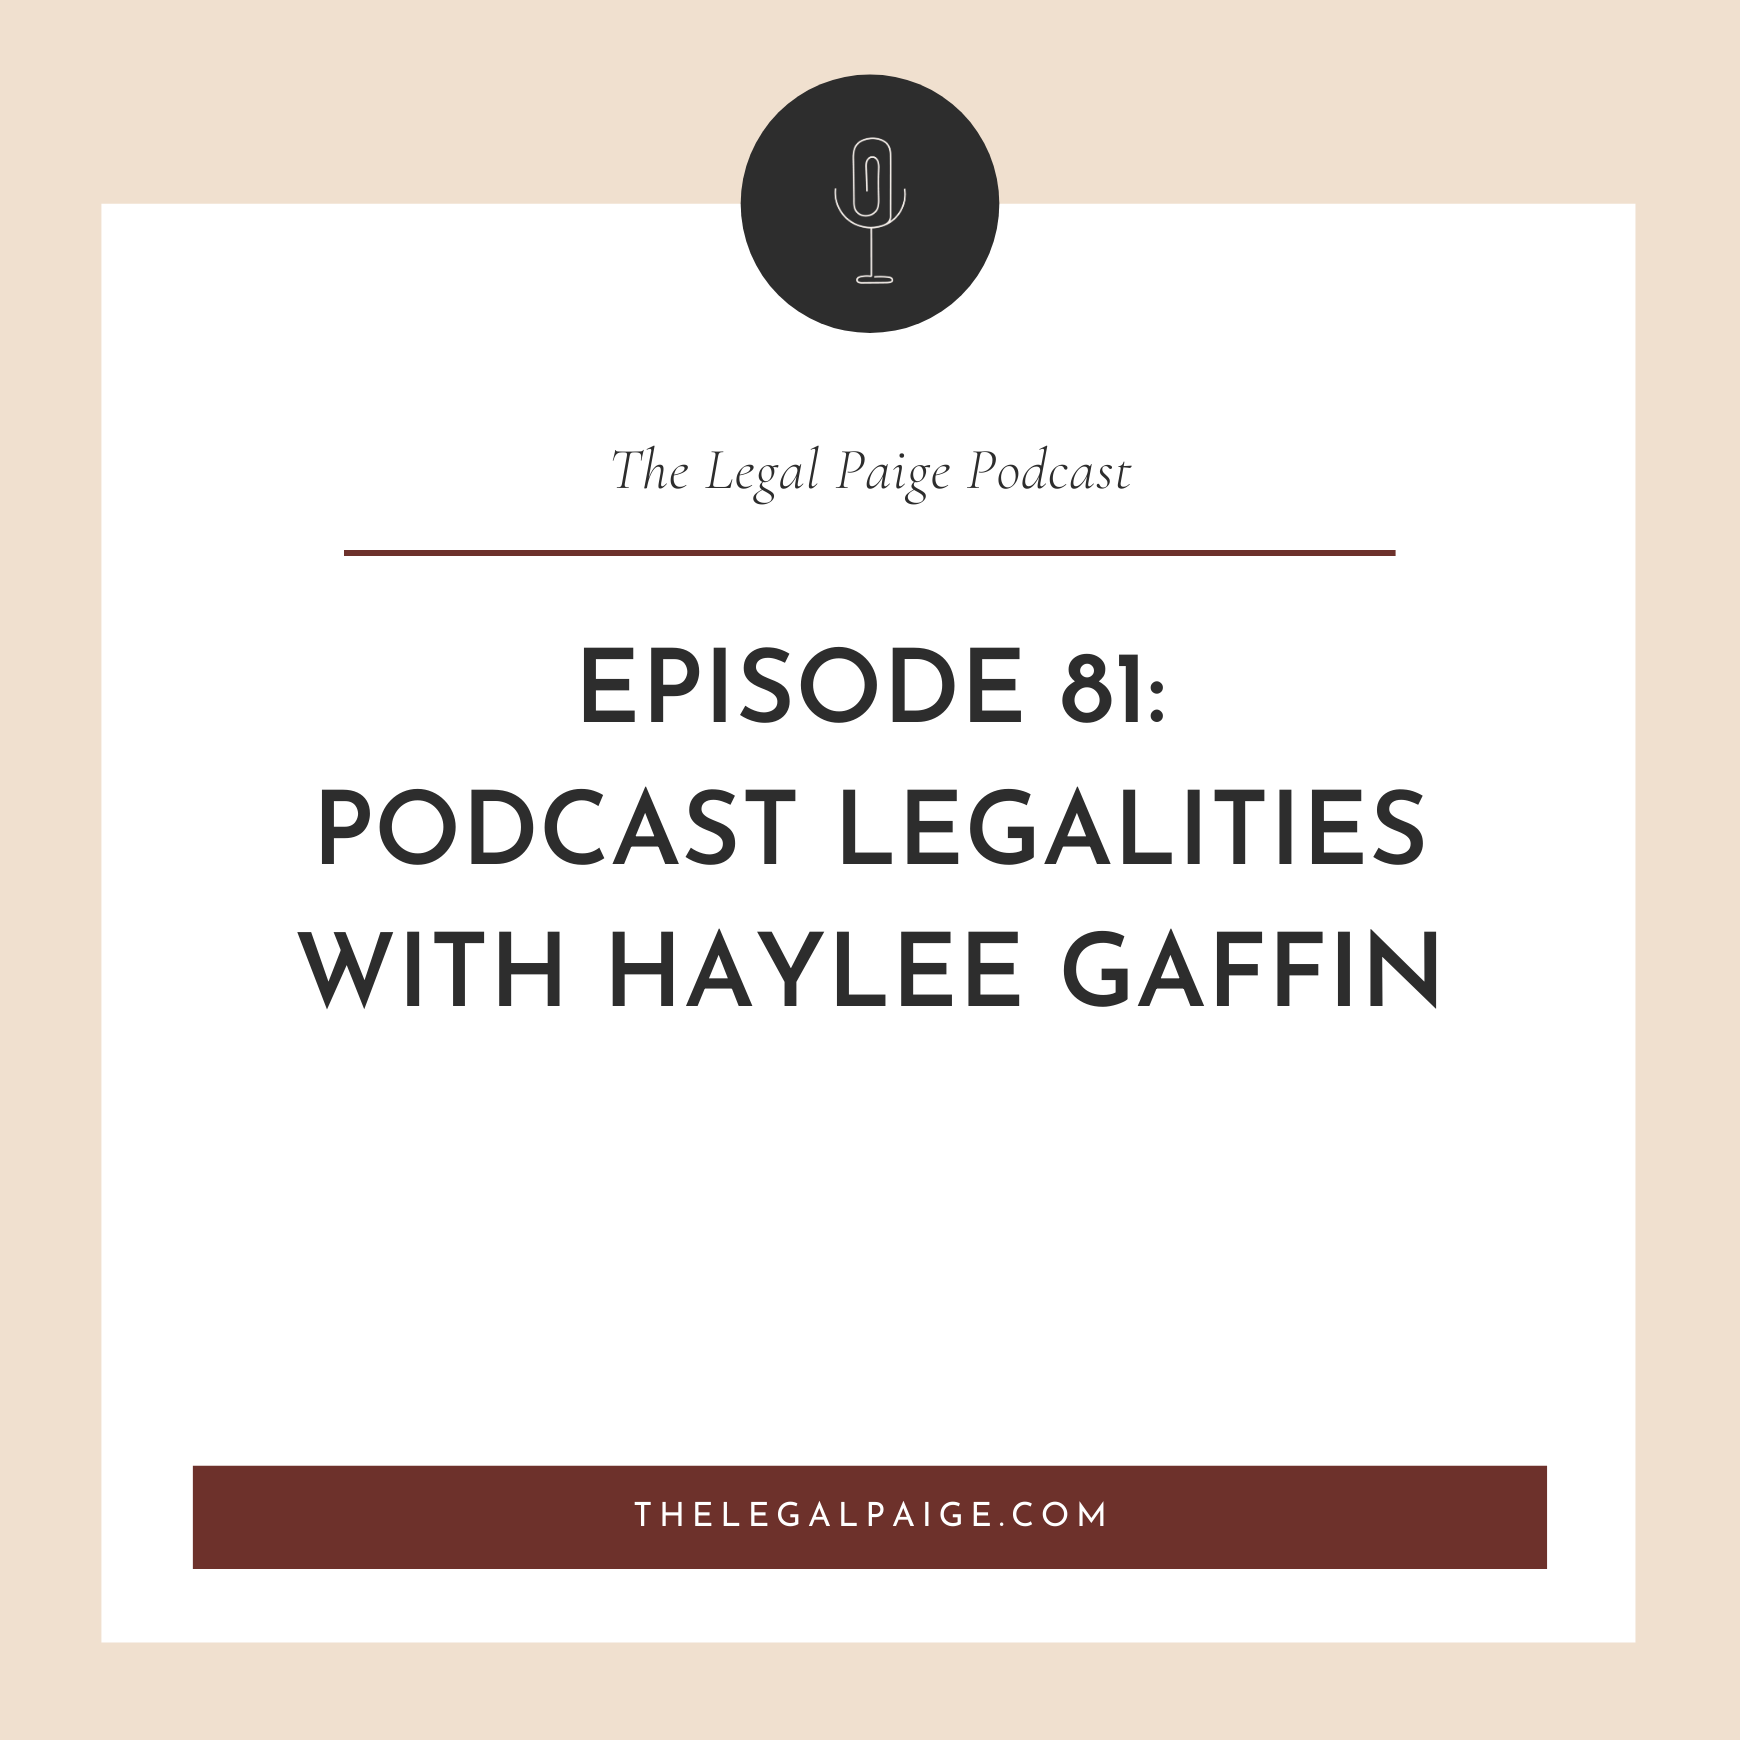 Episode 81: Podcast Legalities With Haylee Gaffin